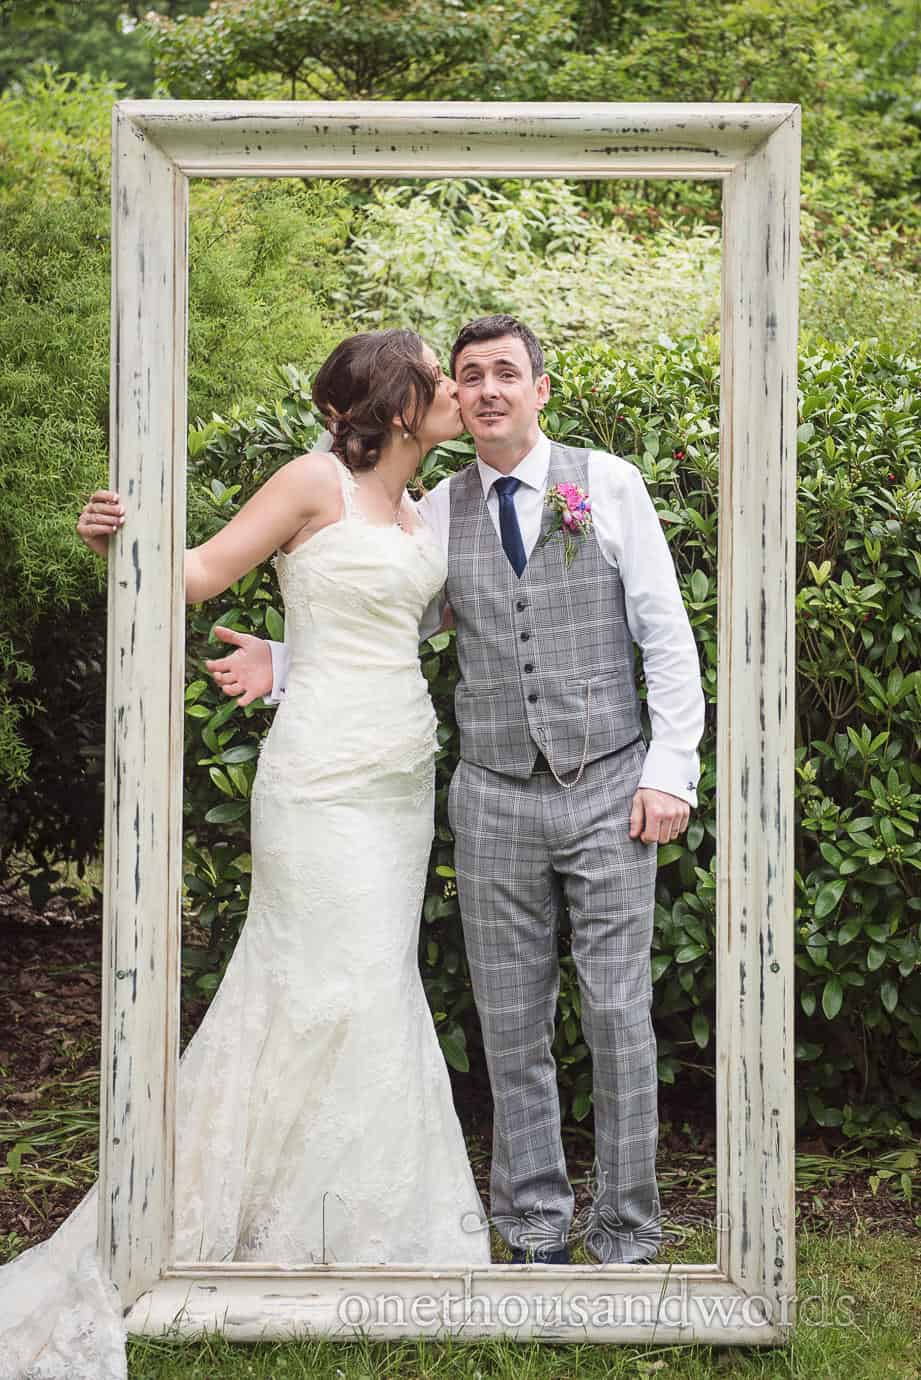 Bride and groom in white distressed picture frame at The Old Vicarage Wedding venue